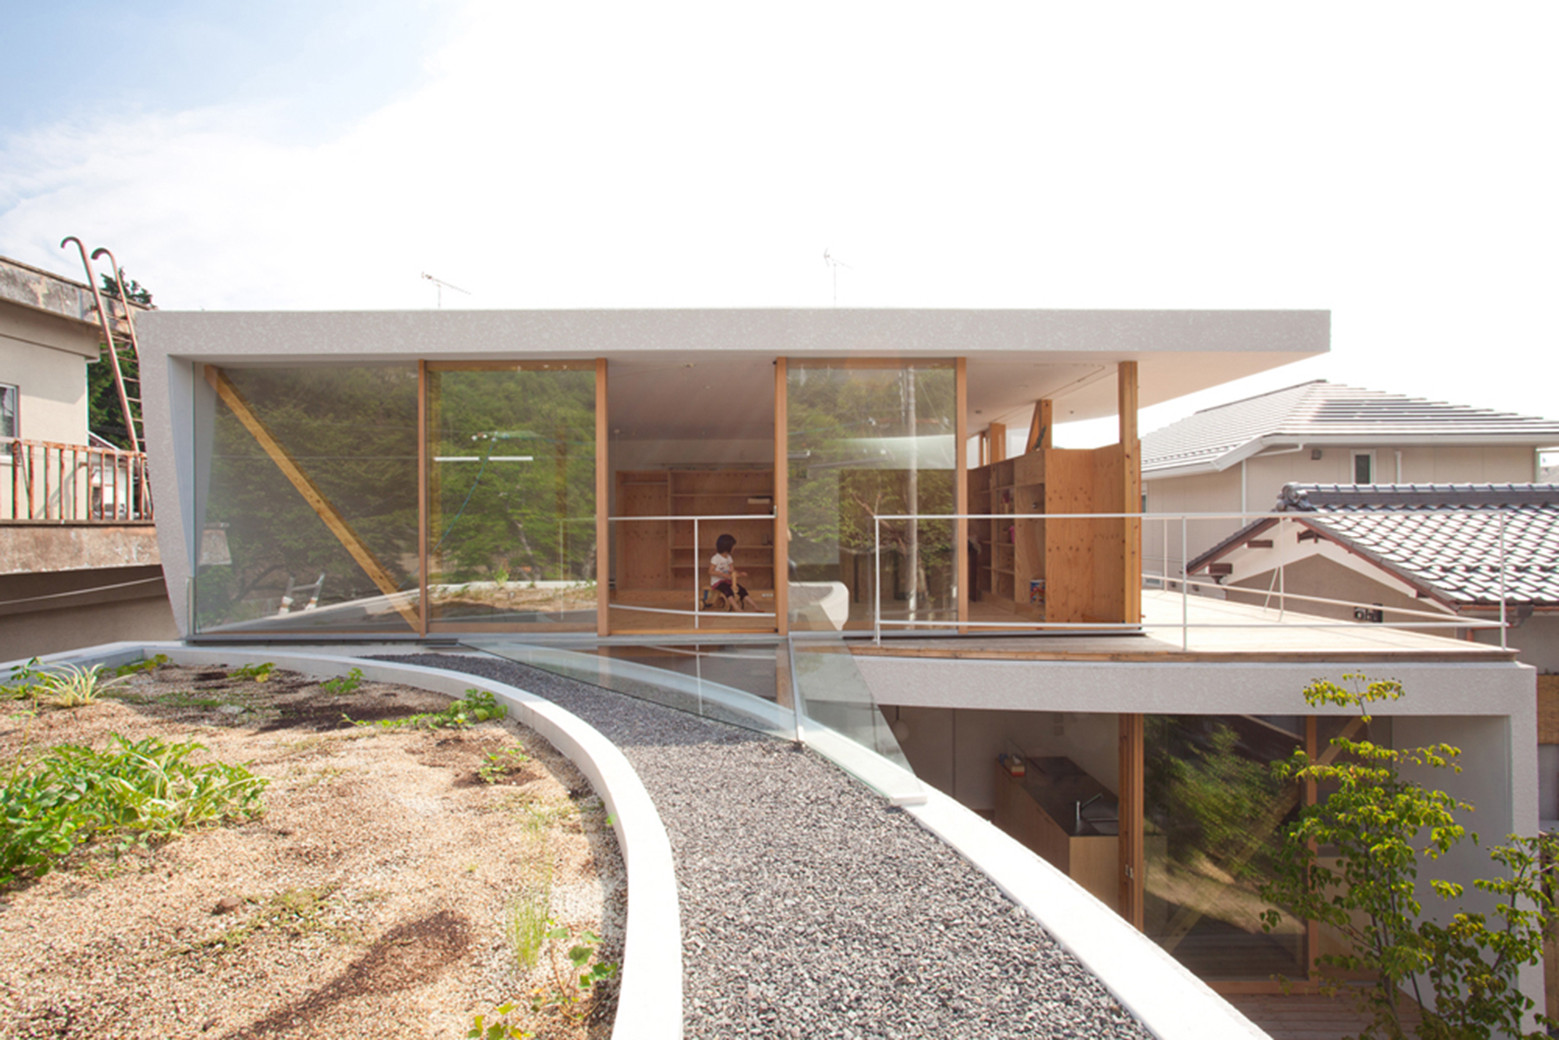 Park and House / tonoma, Courtesy of tonoma